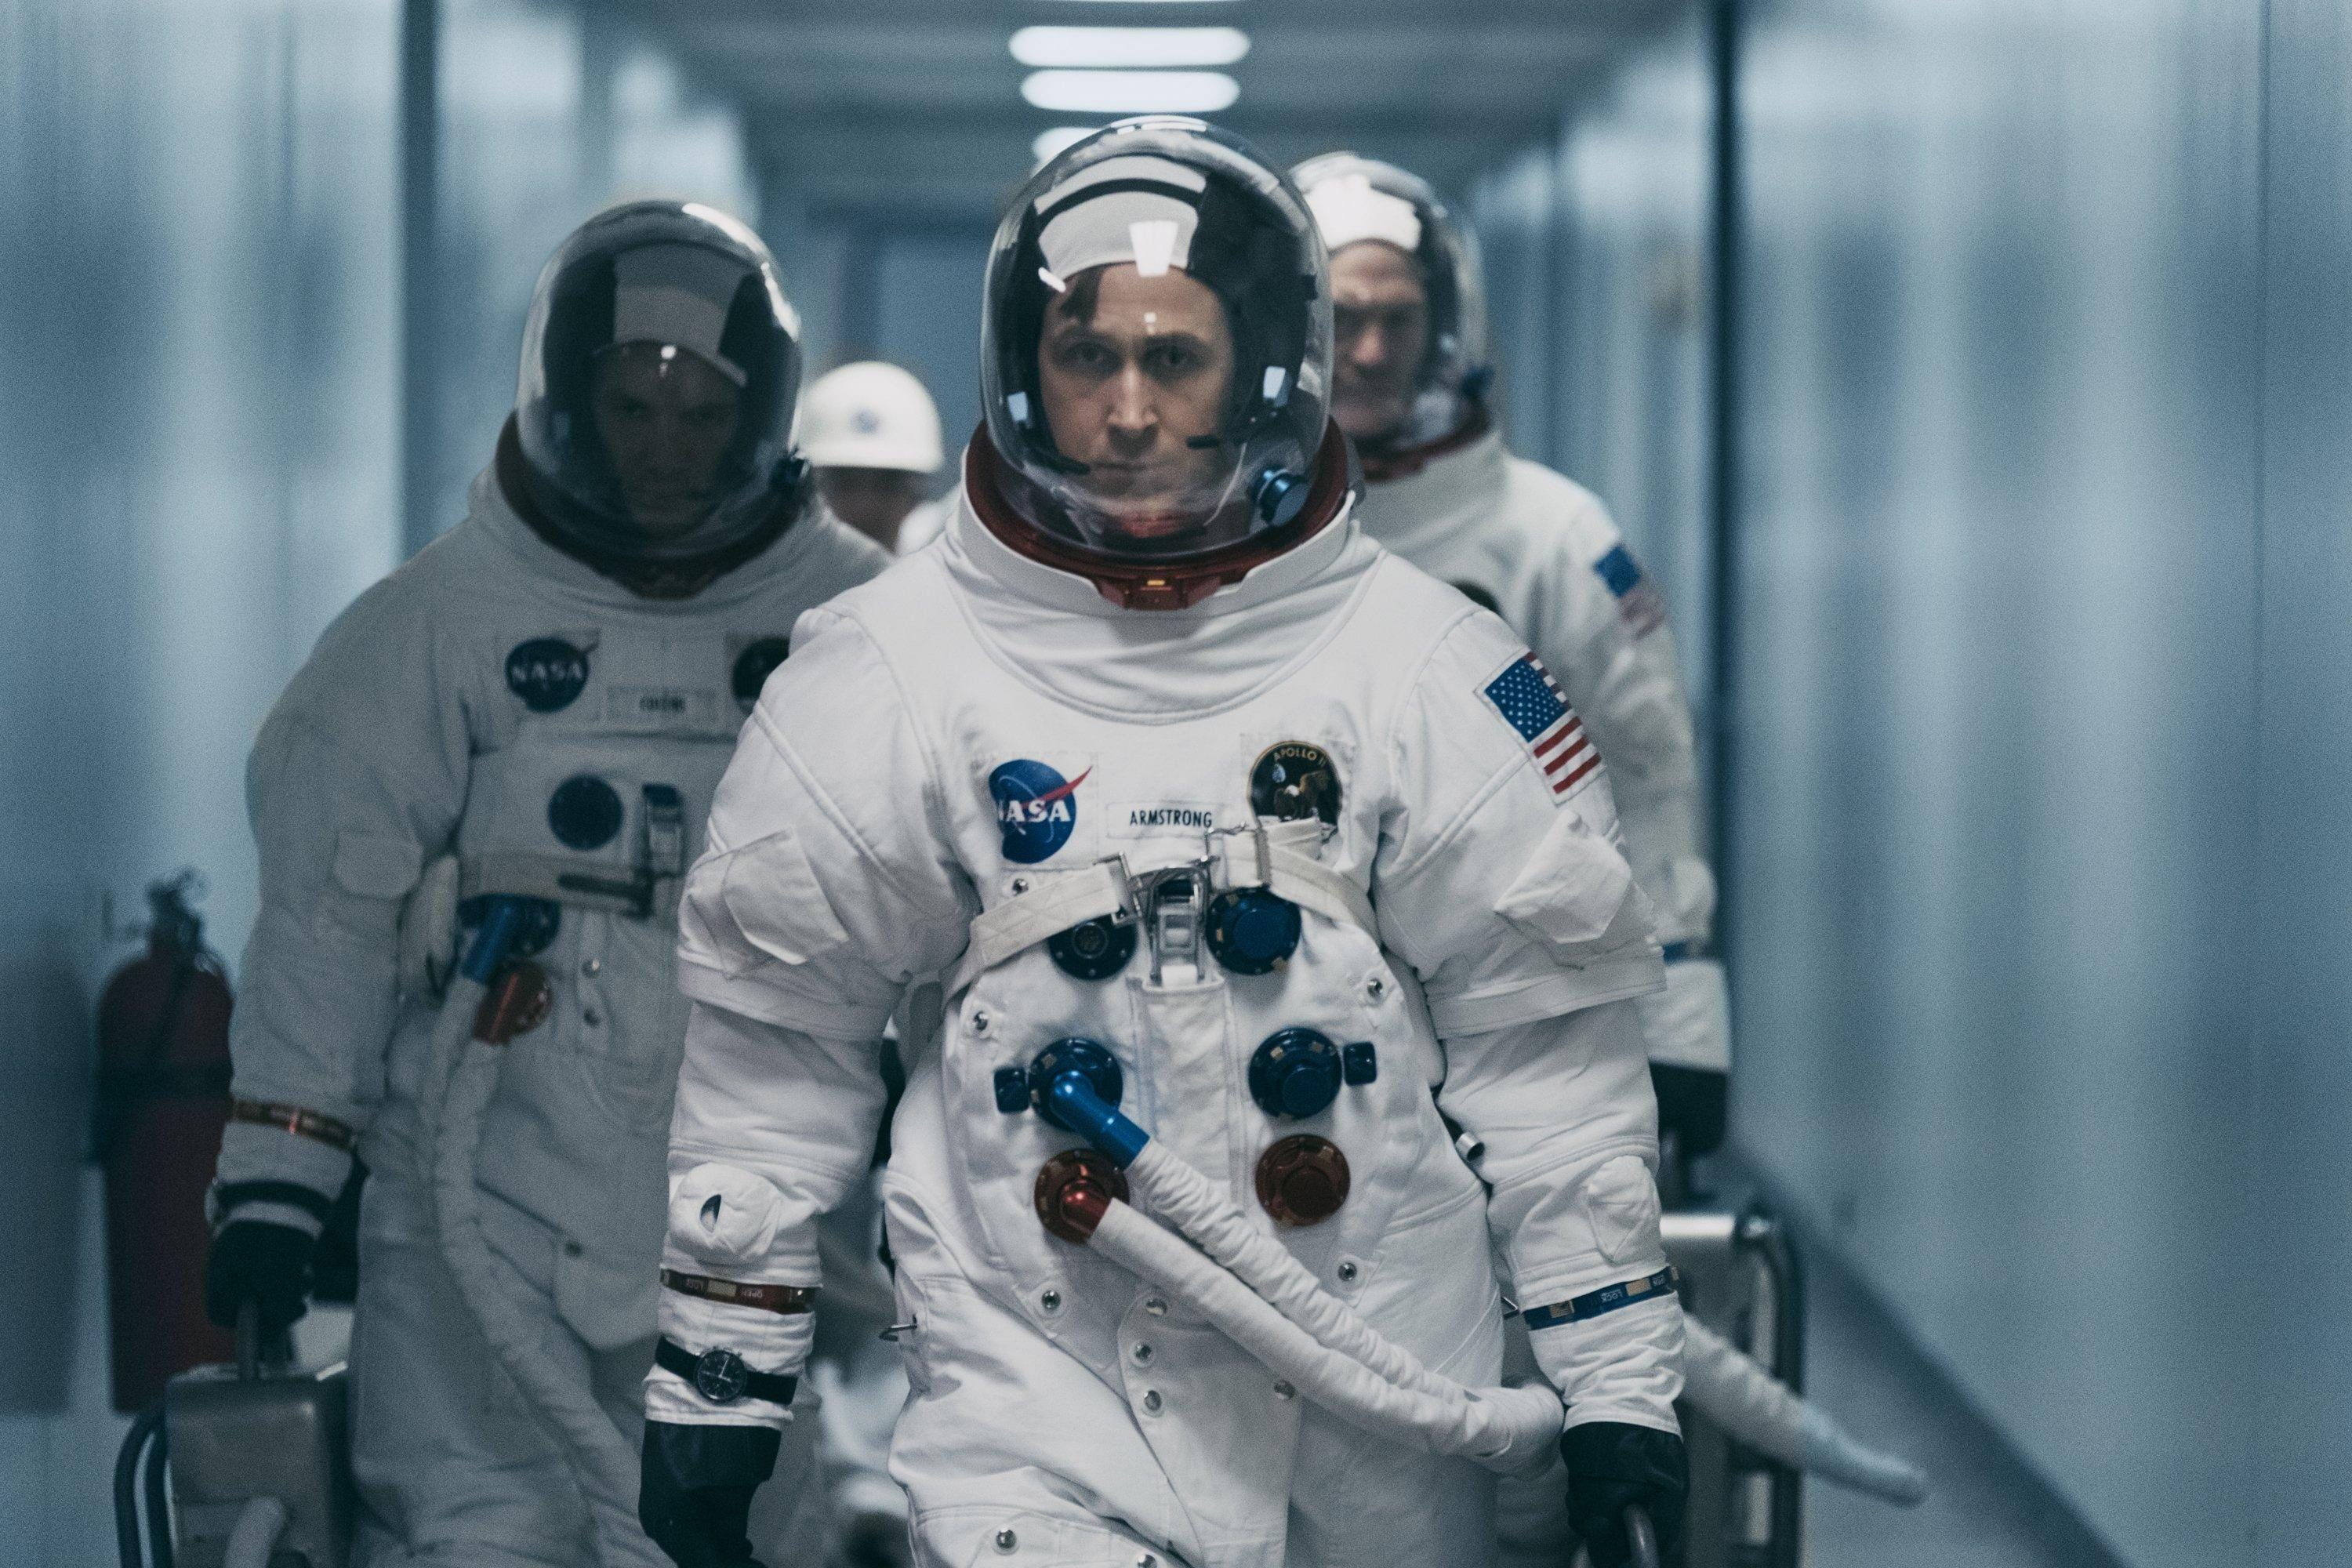 B9334246838Z.1_20181011172119_000_G6DN42BCA.1-0 Now showing: 'First Man,' an intense look at astronaut families and Apollo 11's trek to the moon